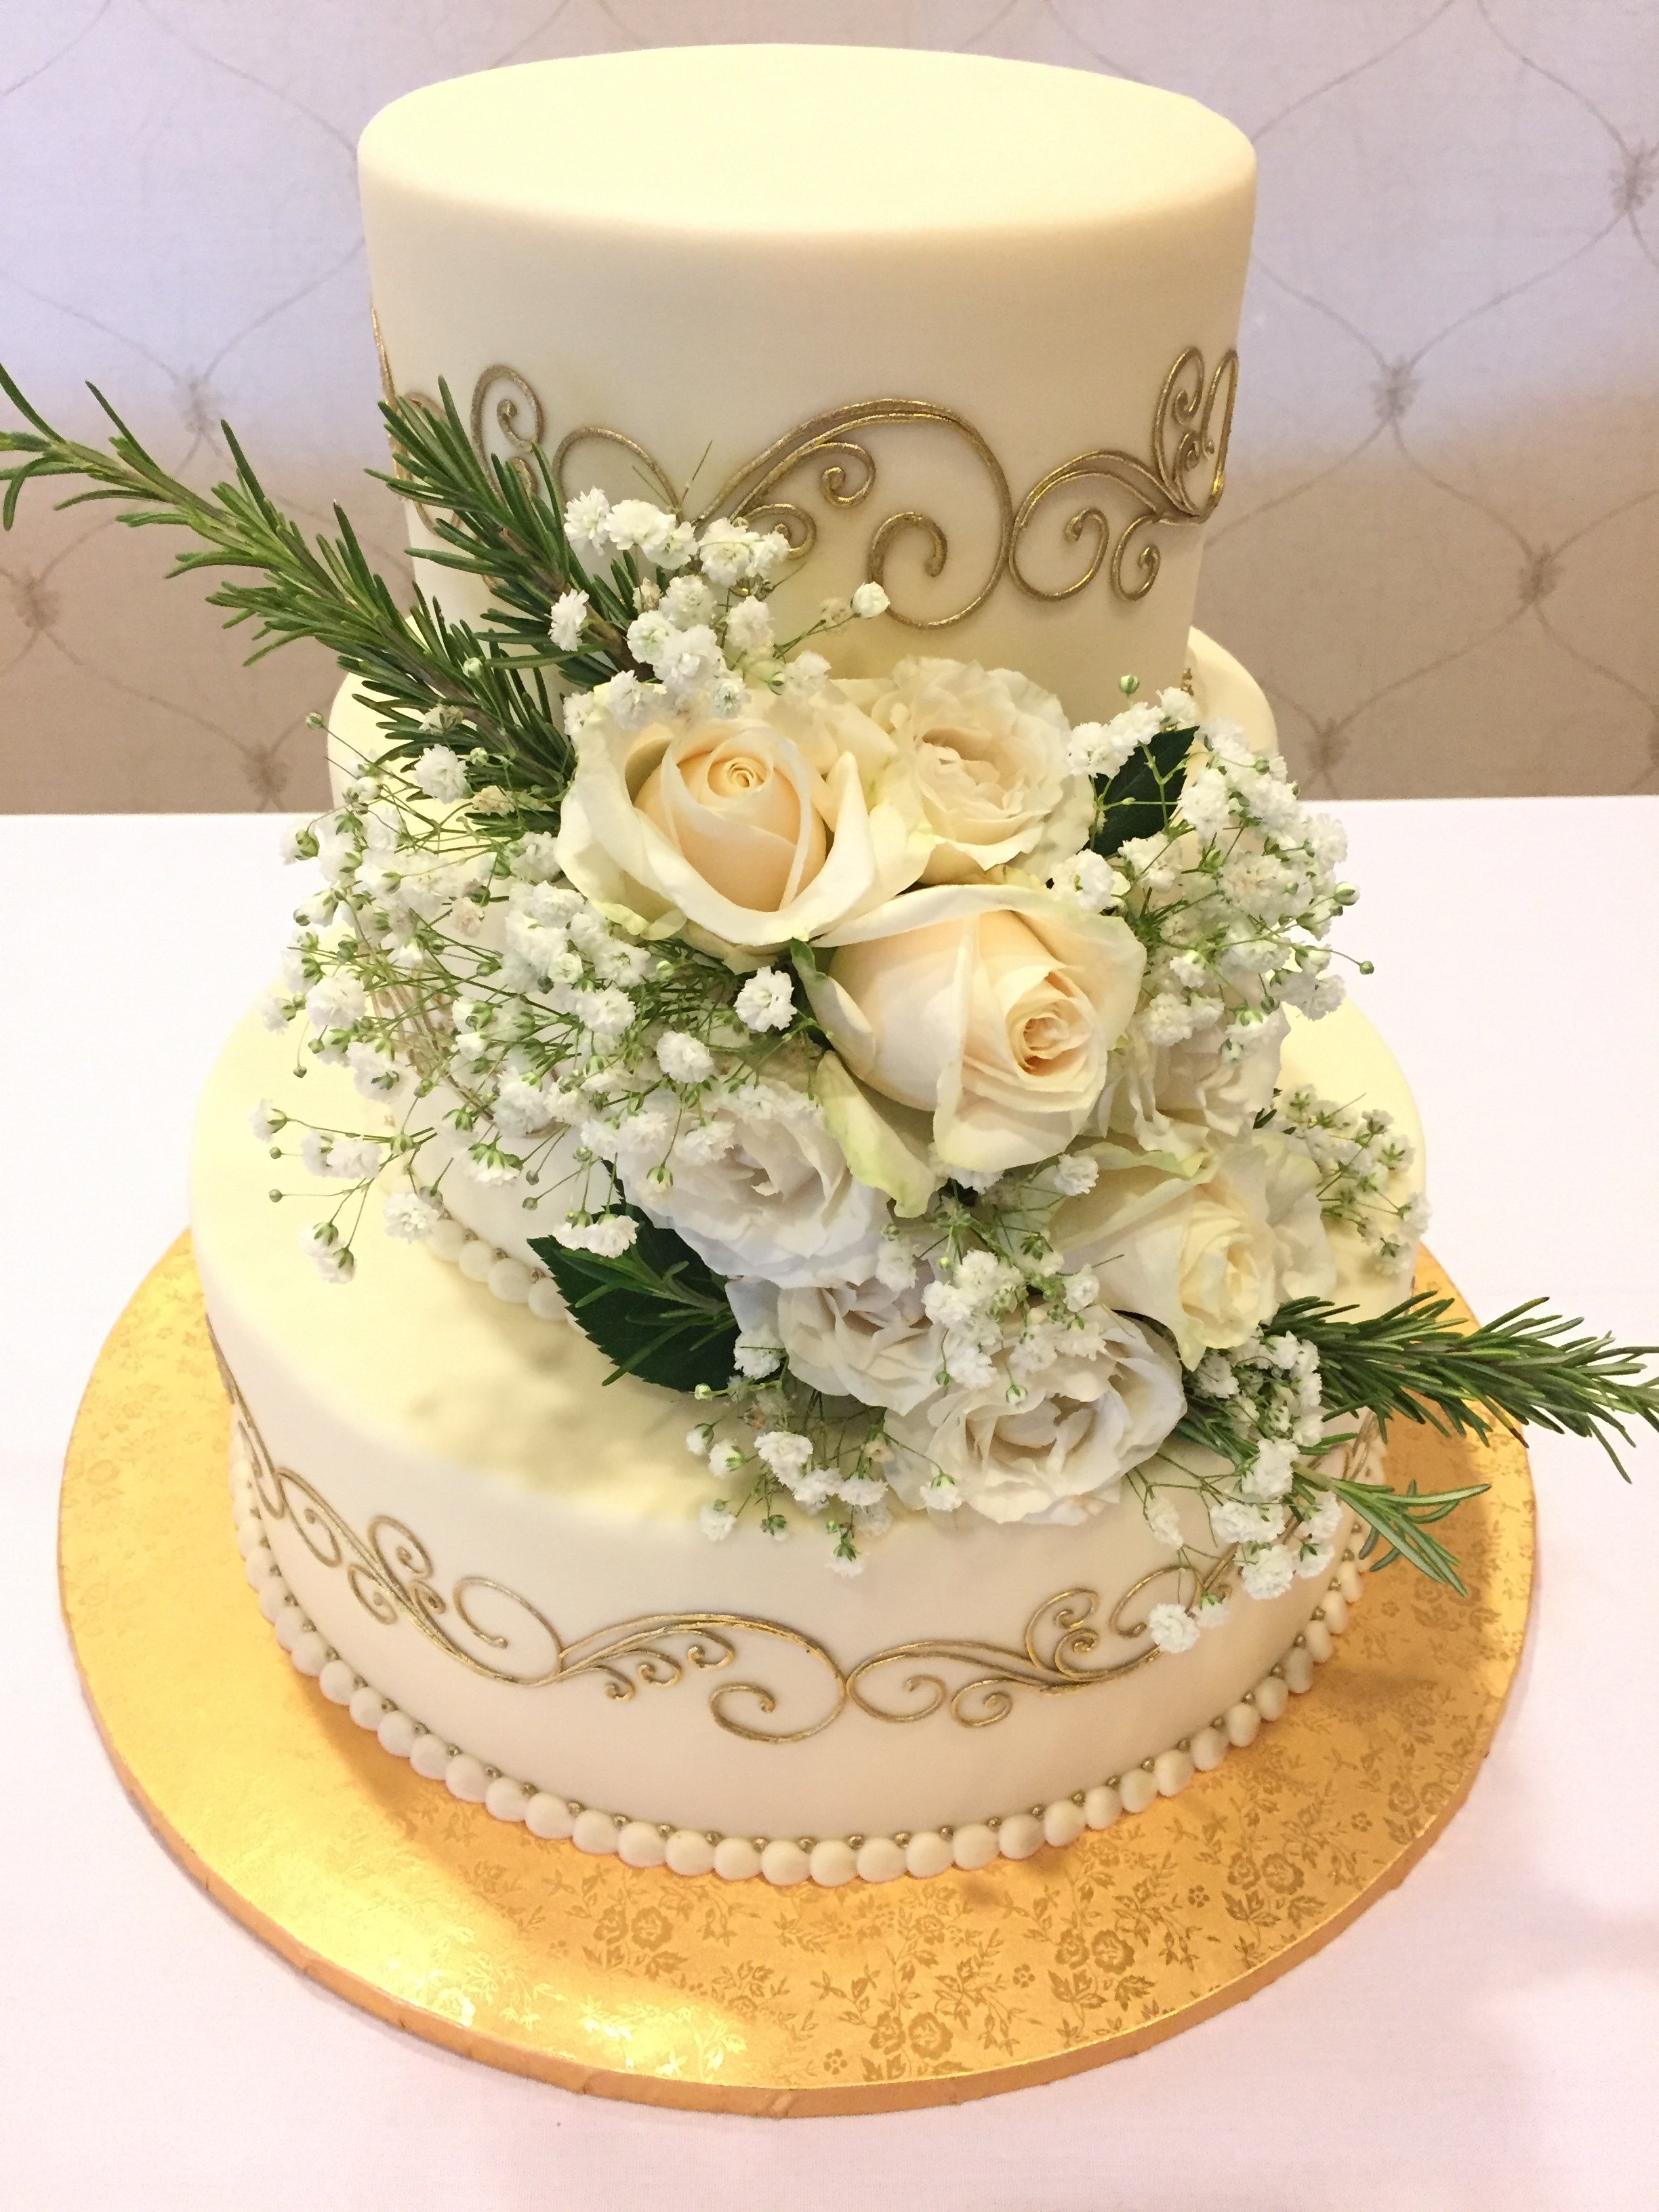 White Roses and Rosemary for a Wedding Cake